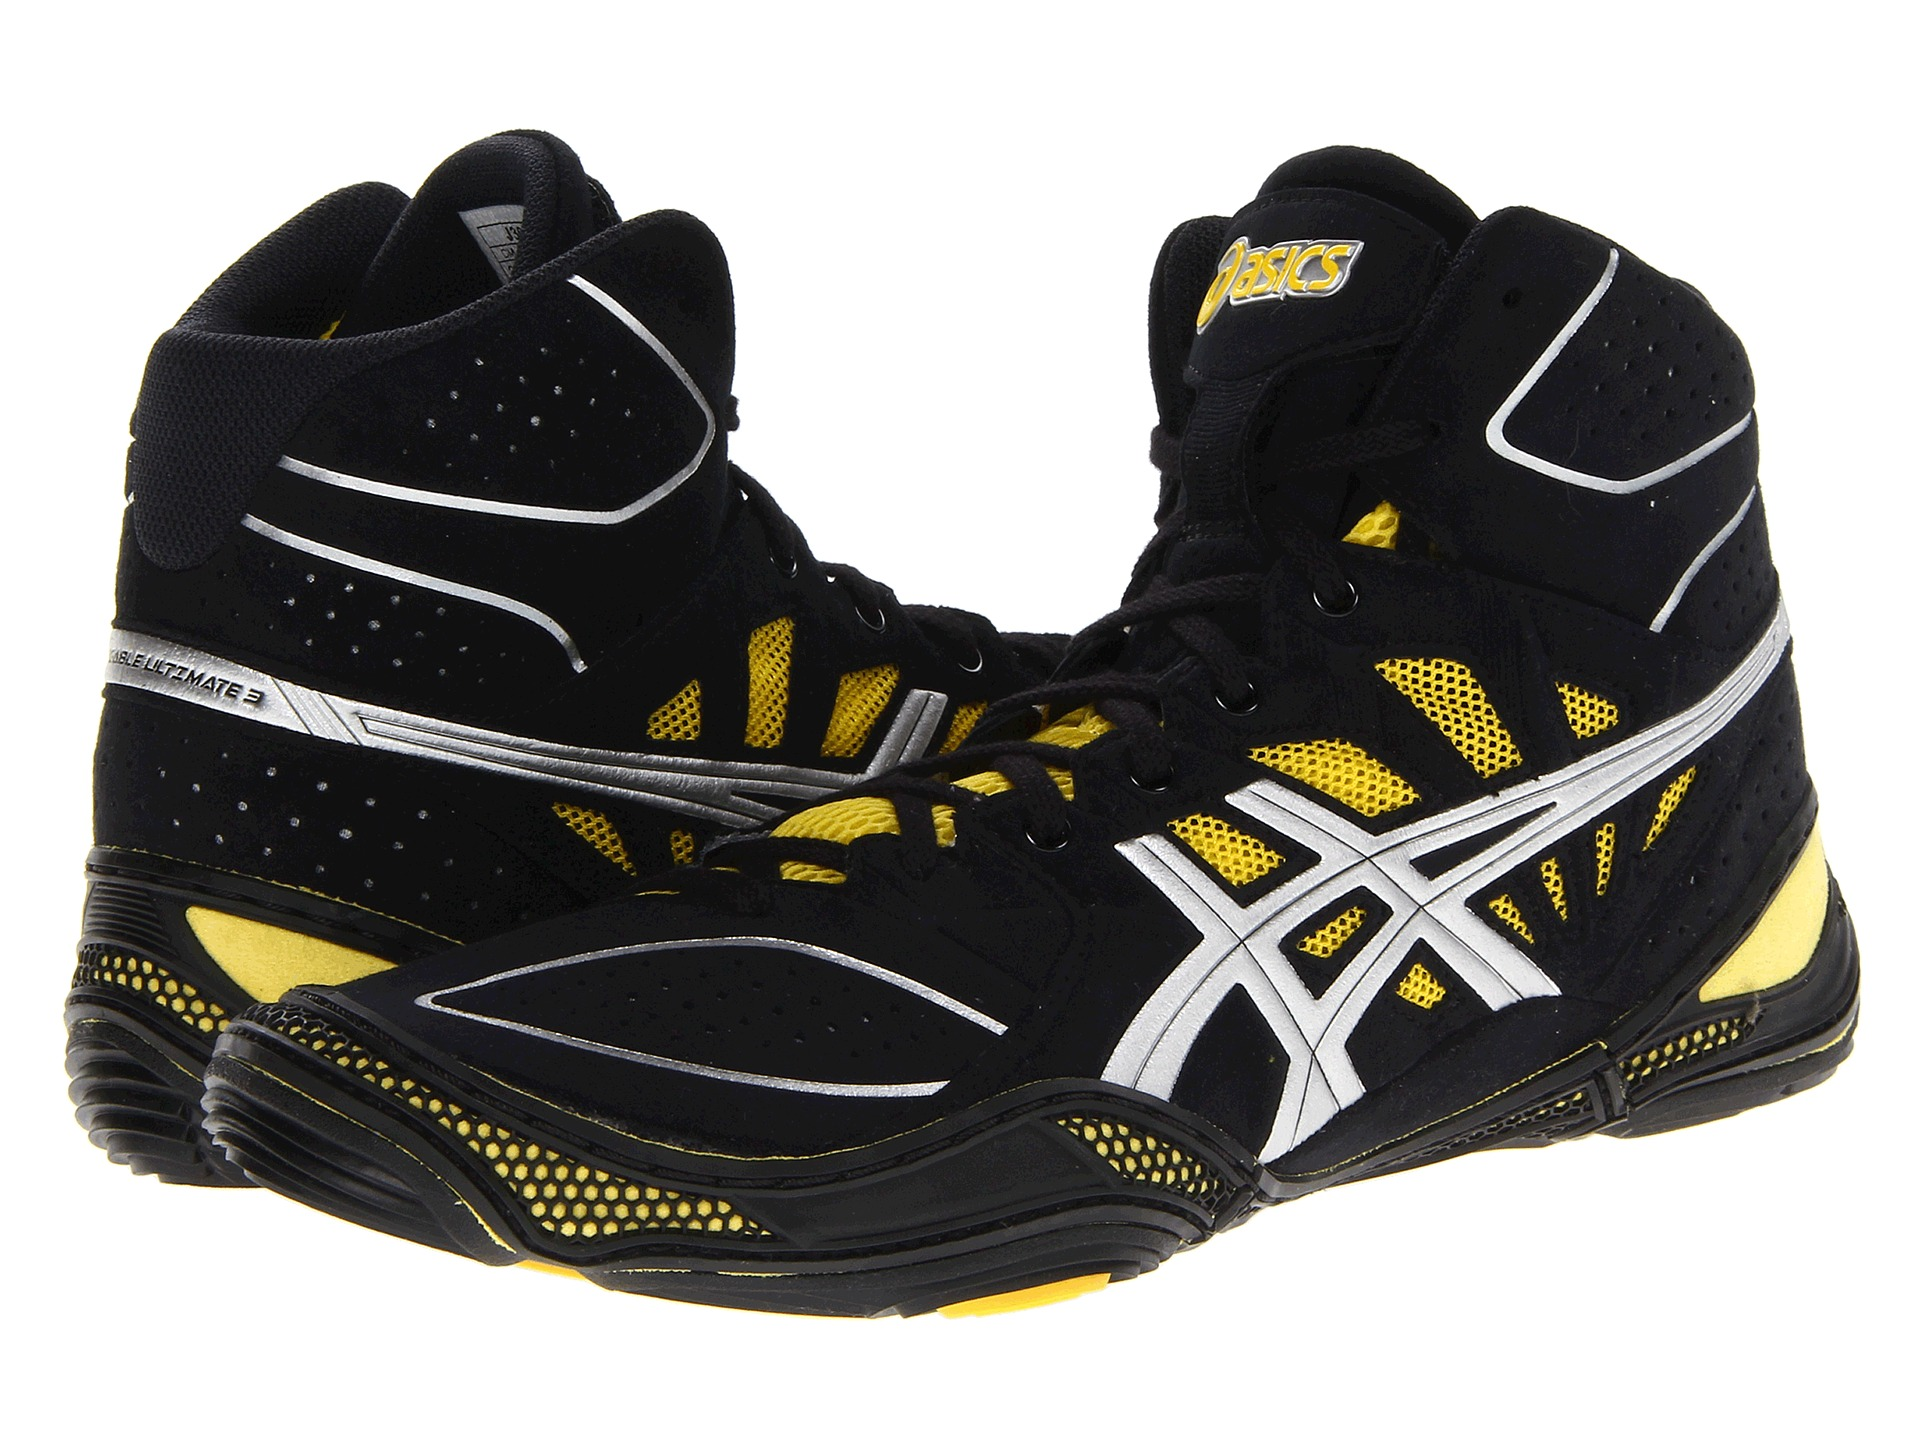 1ccaa9fc261 Asics Dan Gable Ultimate 3